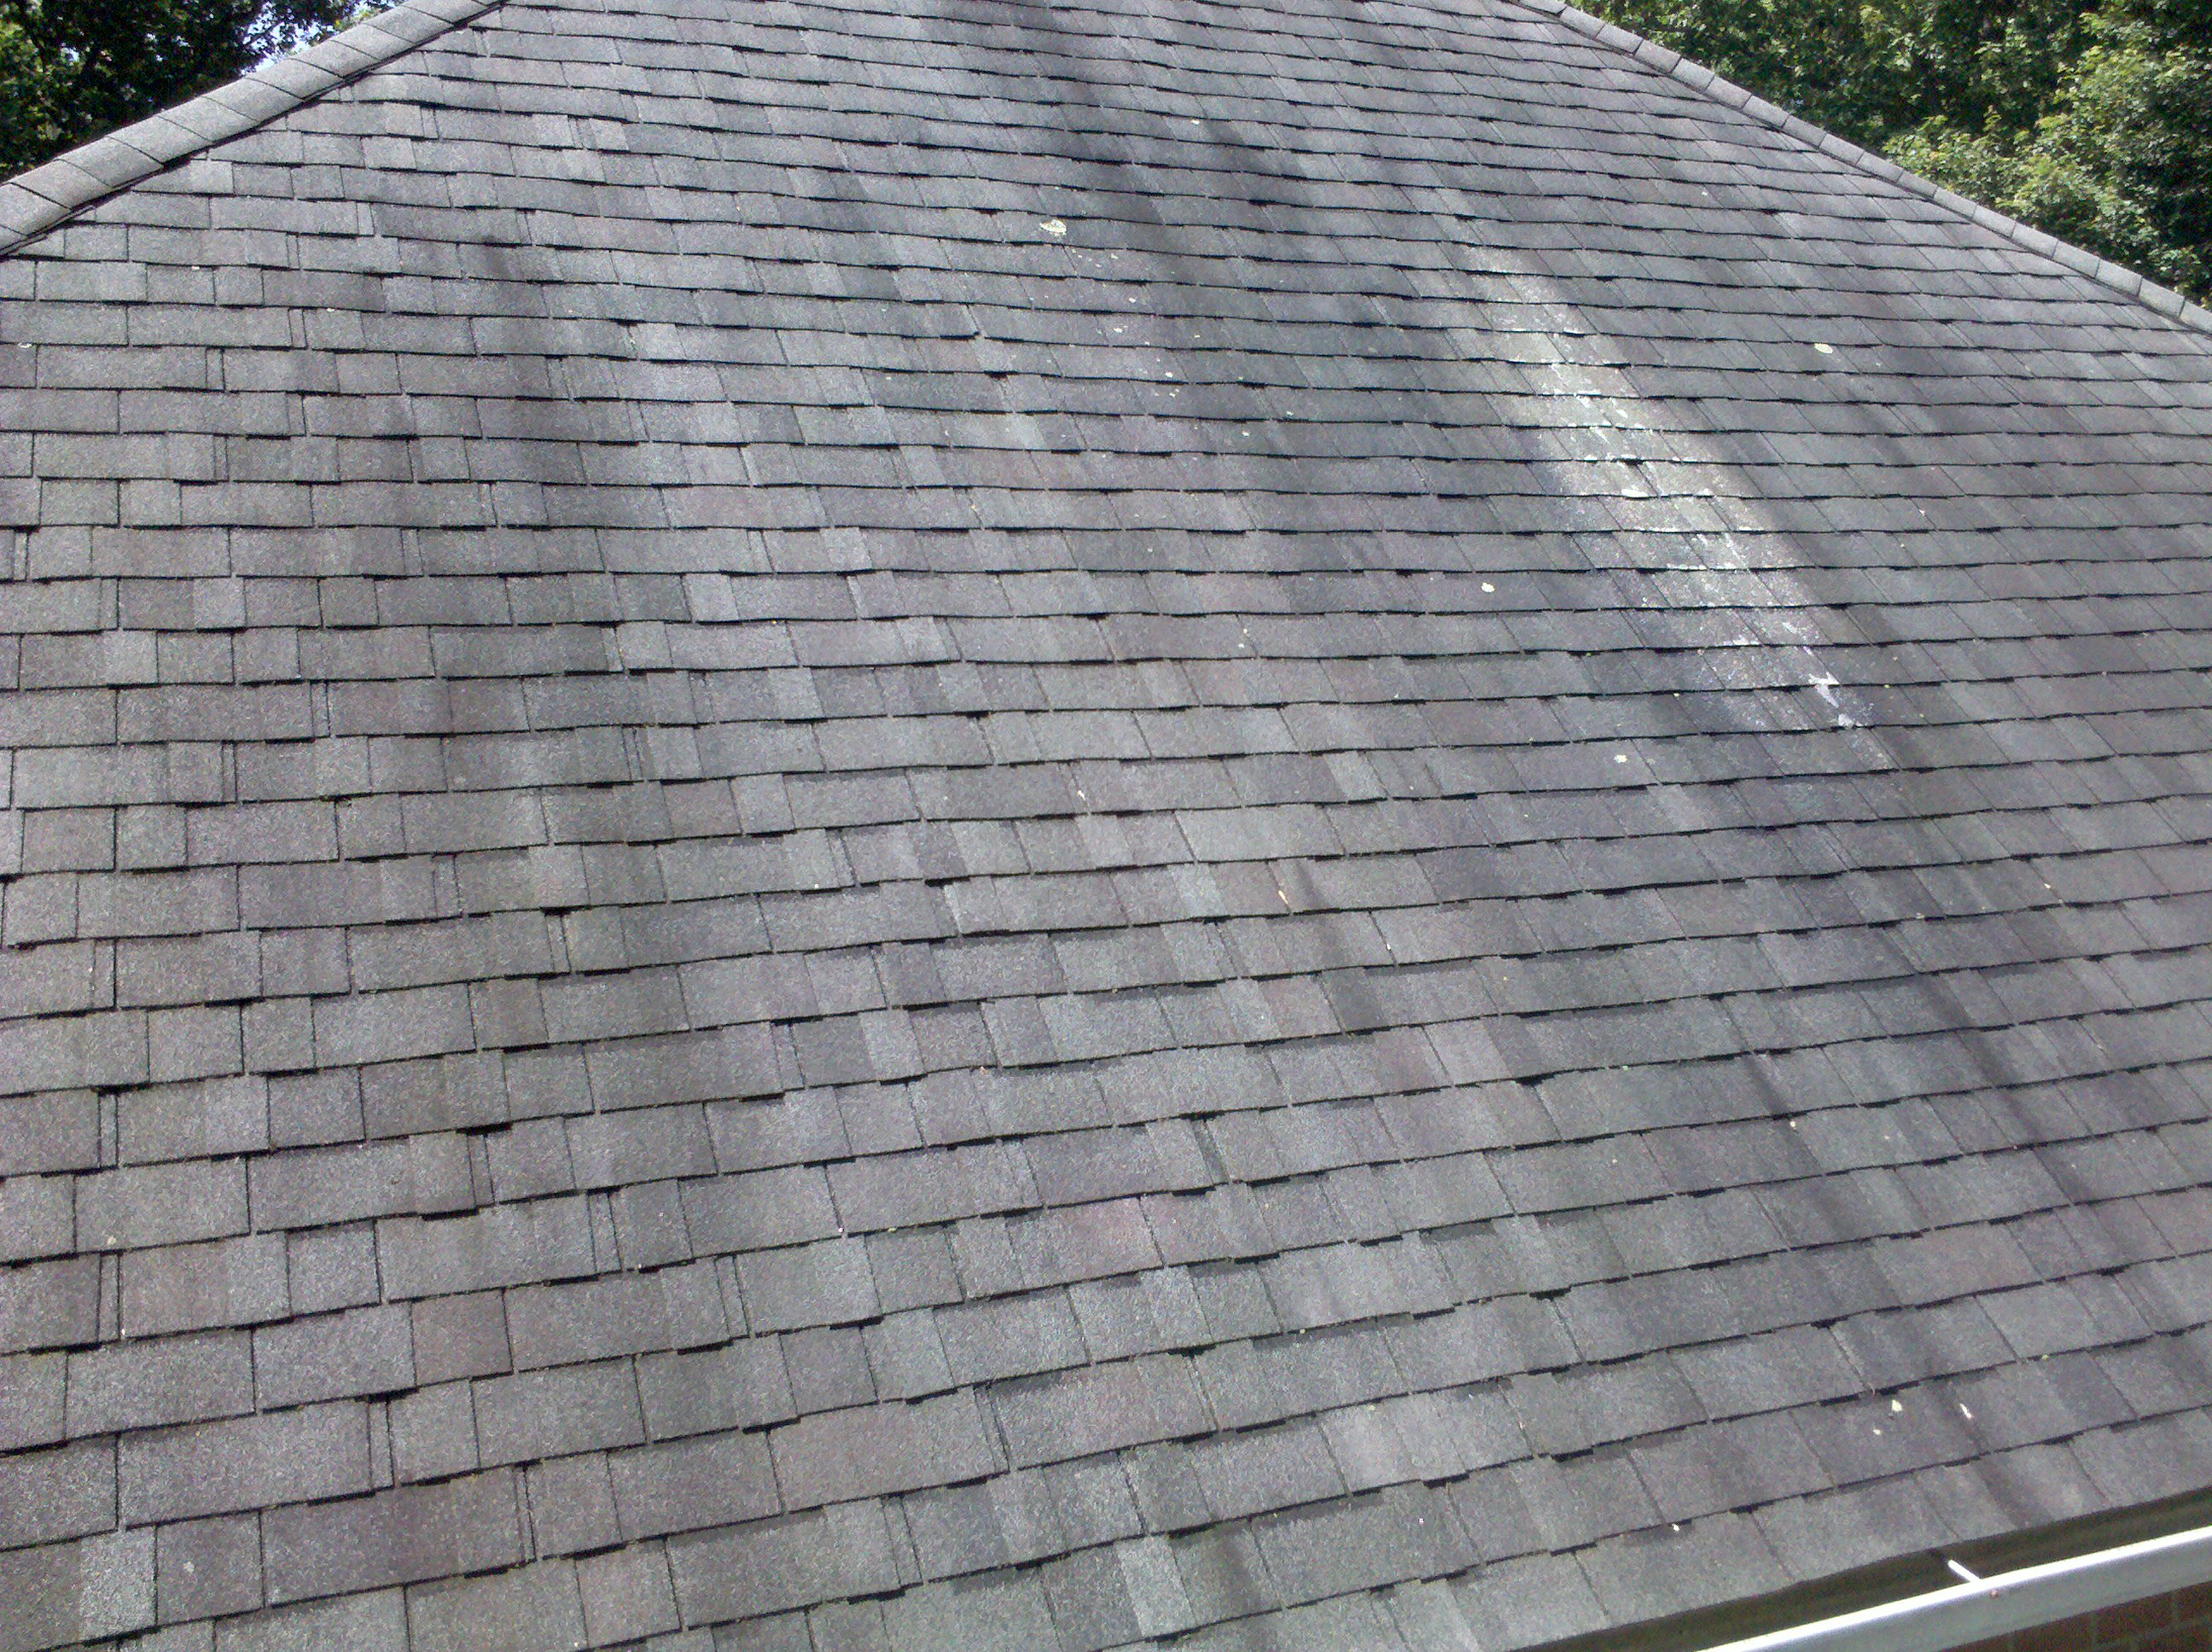 dirty looking roof